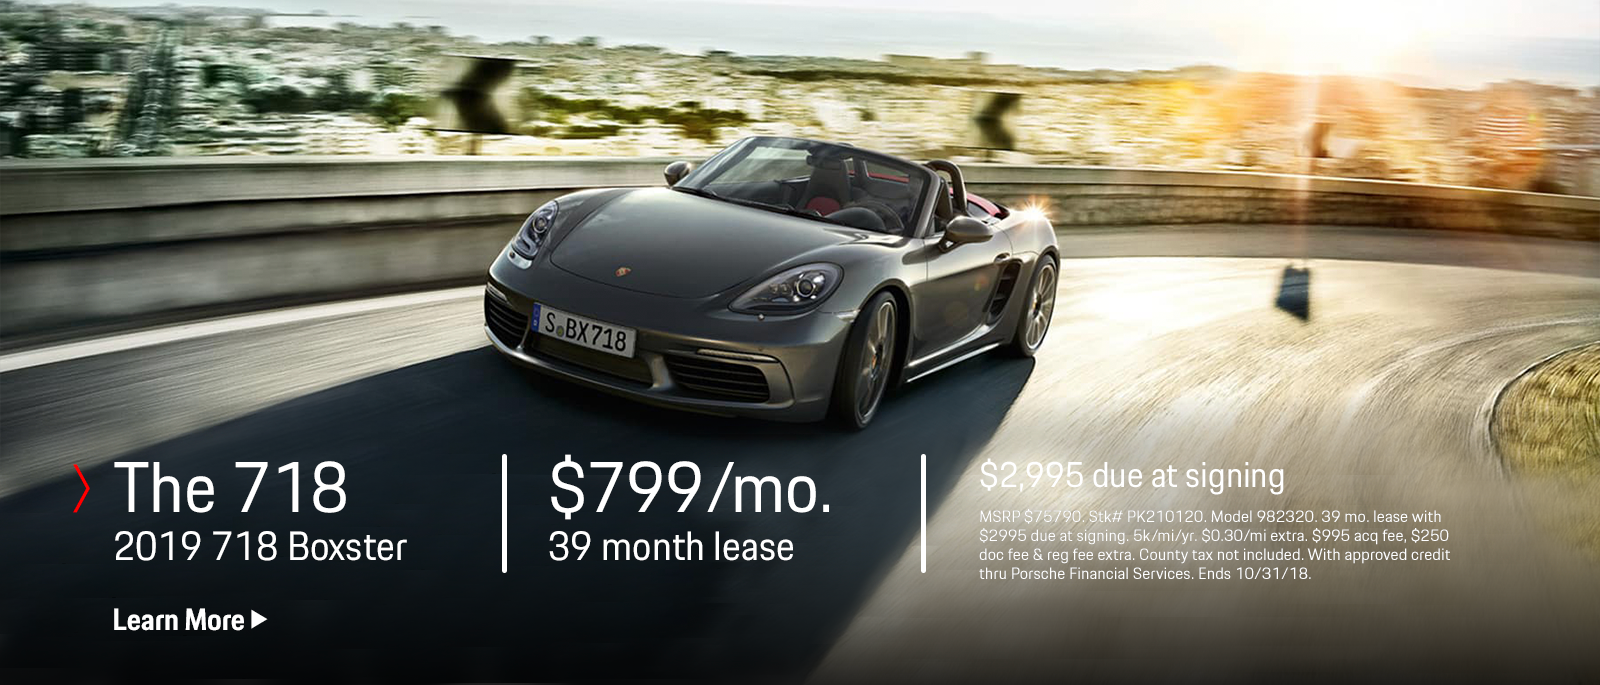 PNOOH-18398-webslider-1600x685-OCT-Boxster